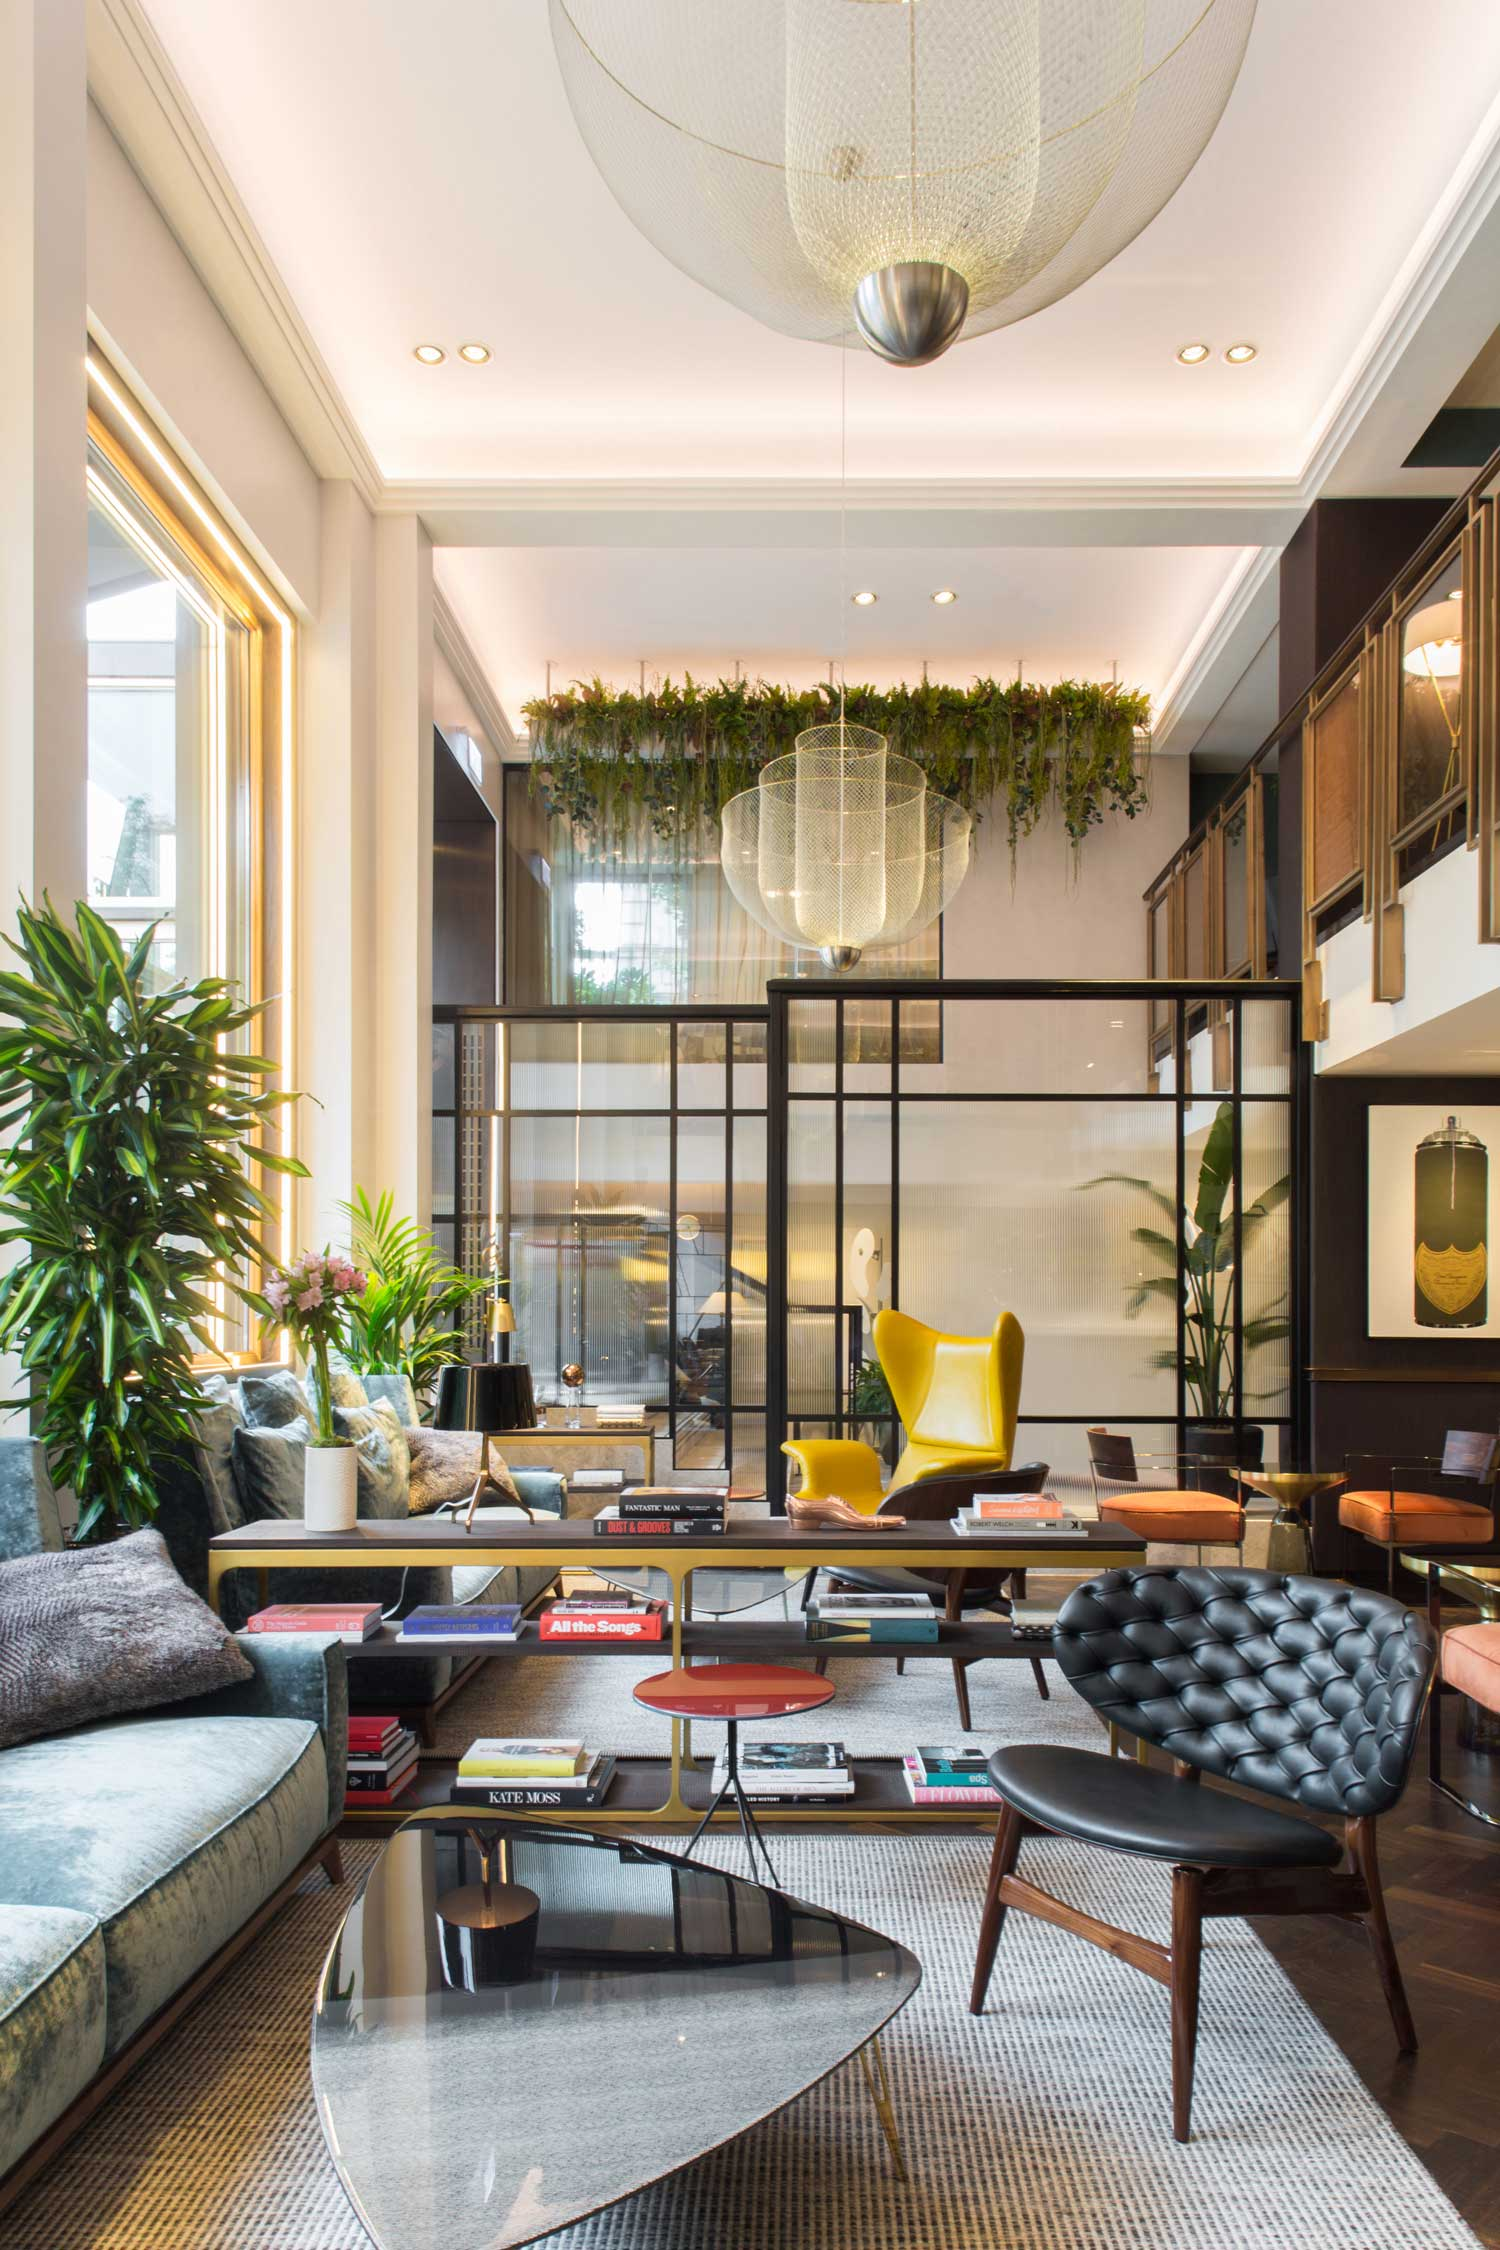 Hotel Interior: Athenaeum Hotel & Residences By Kinnersley Kent Design